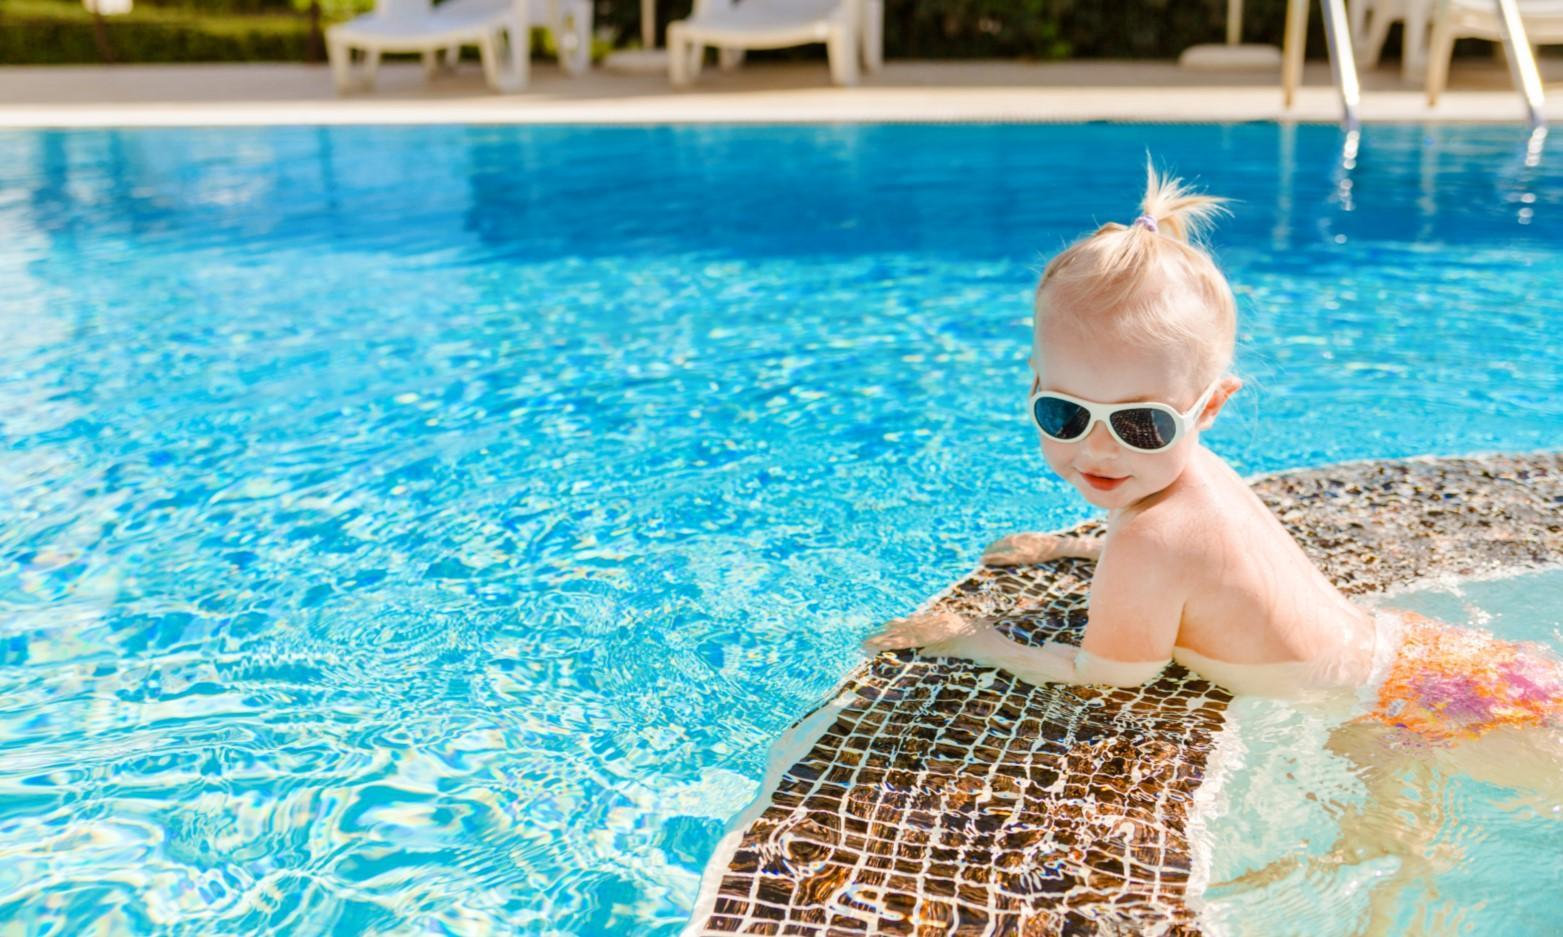 Top 20 Summer Inspired Girls and Boys Names